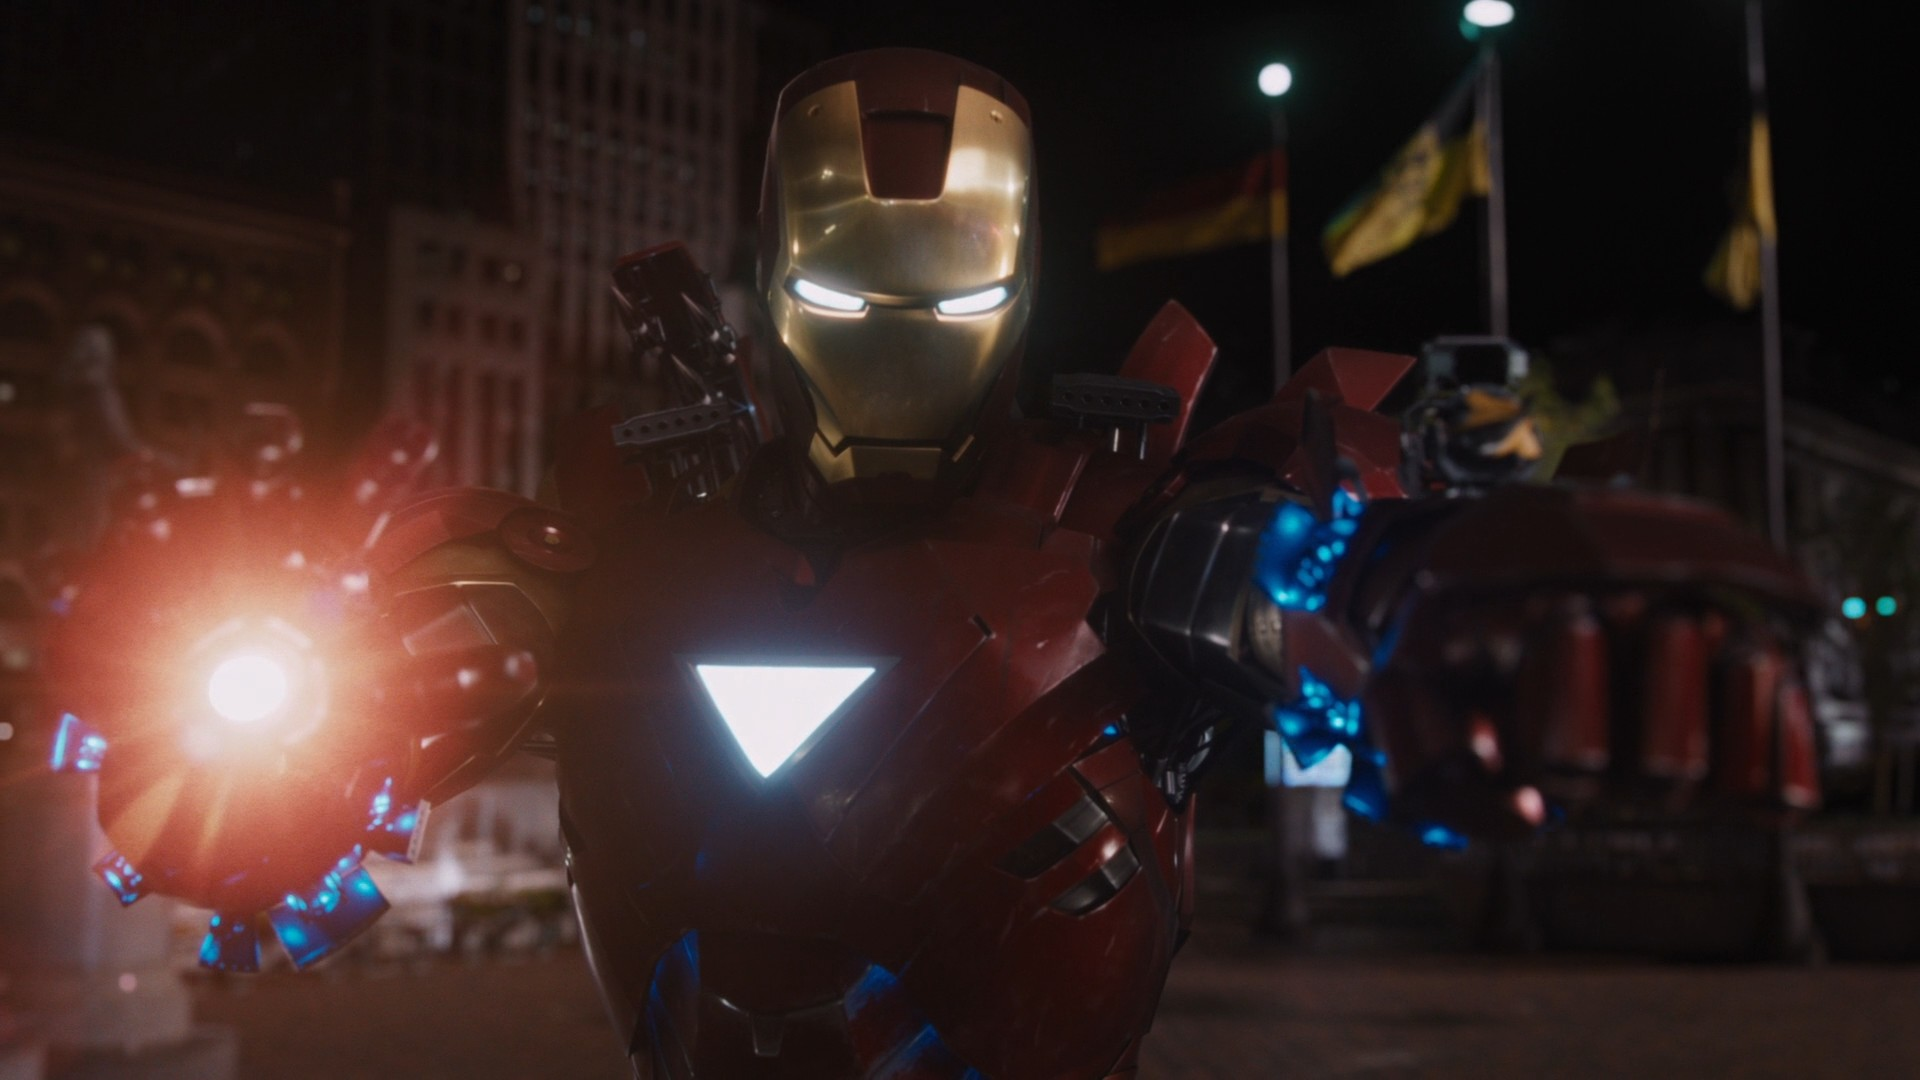 Iron man movies screenshots marvel the avengers movie wallpaper iron man movies screenshots marvel the avengers movie wallpaper voltagebd Image collections